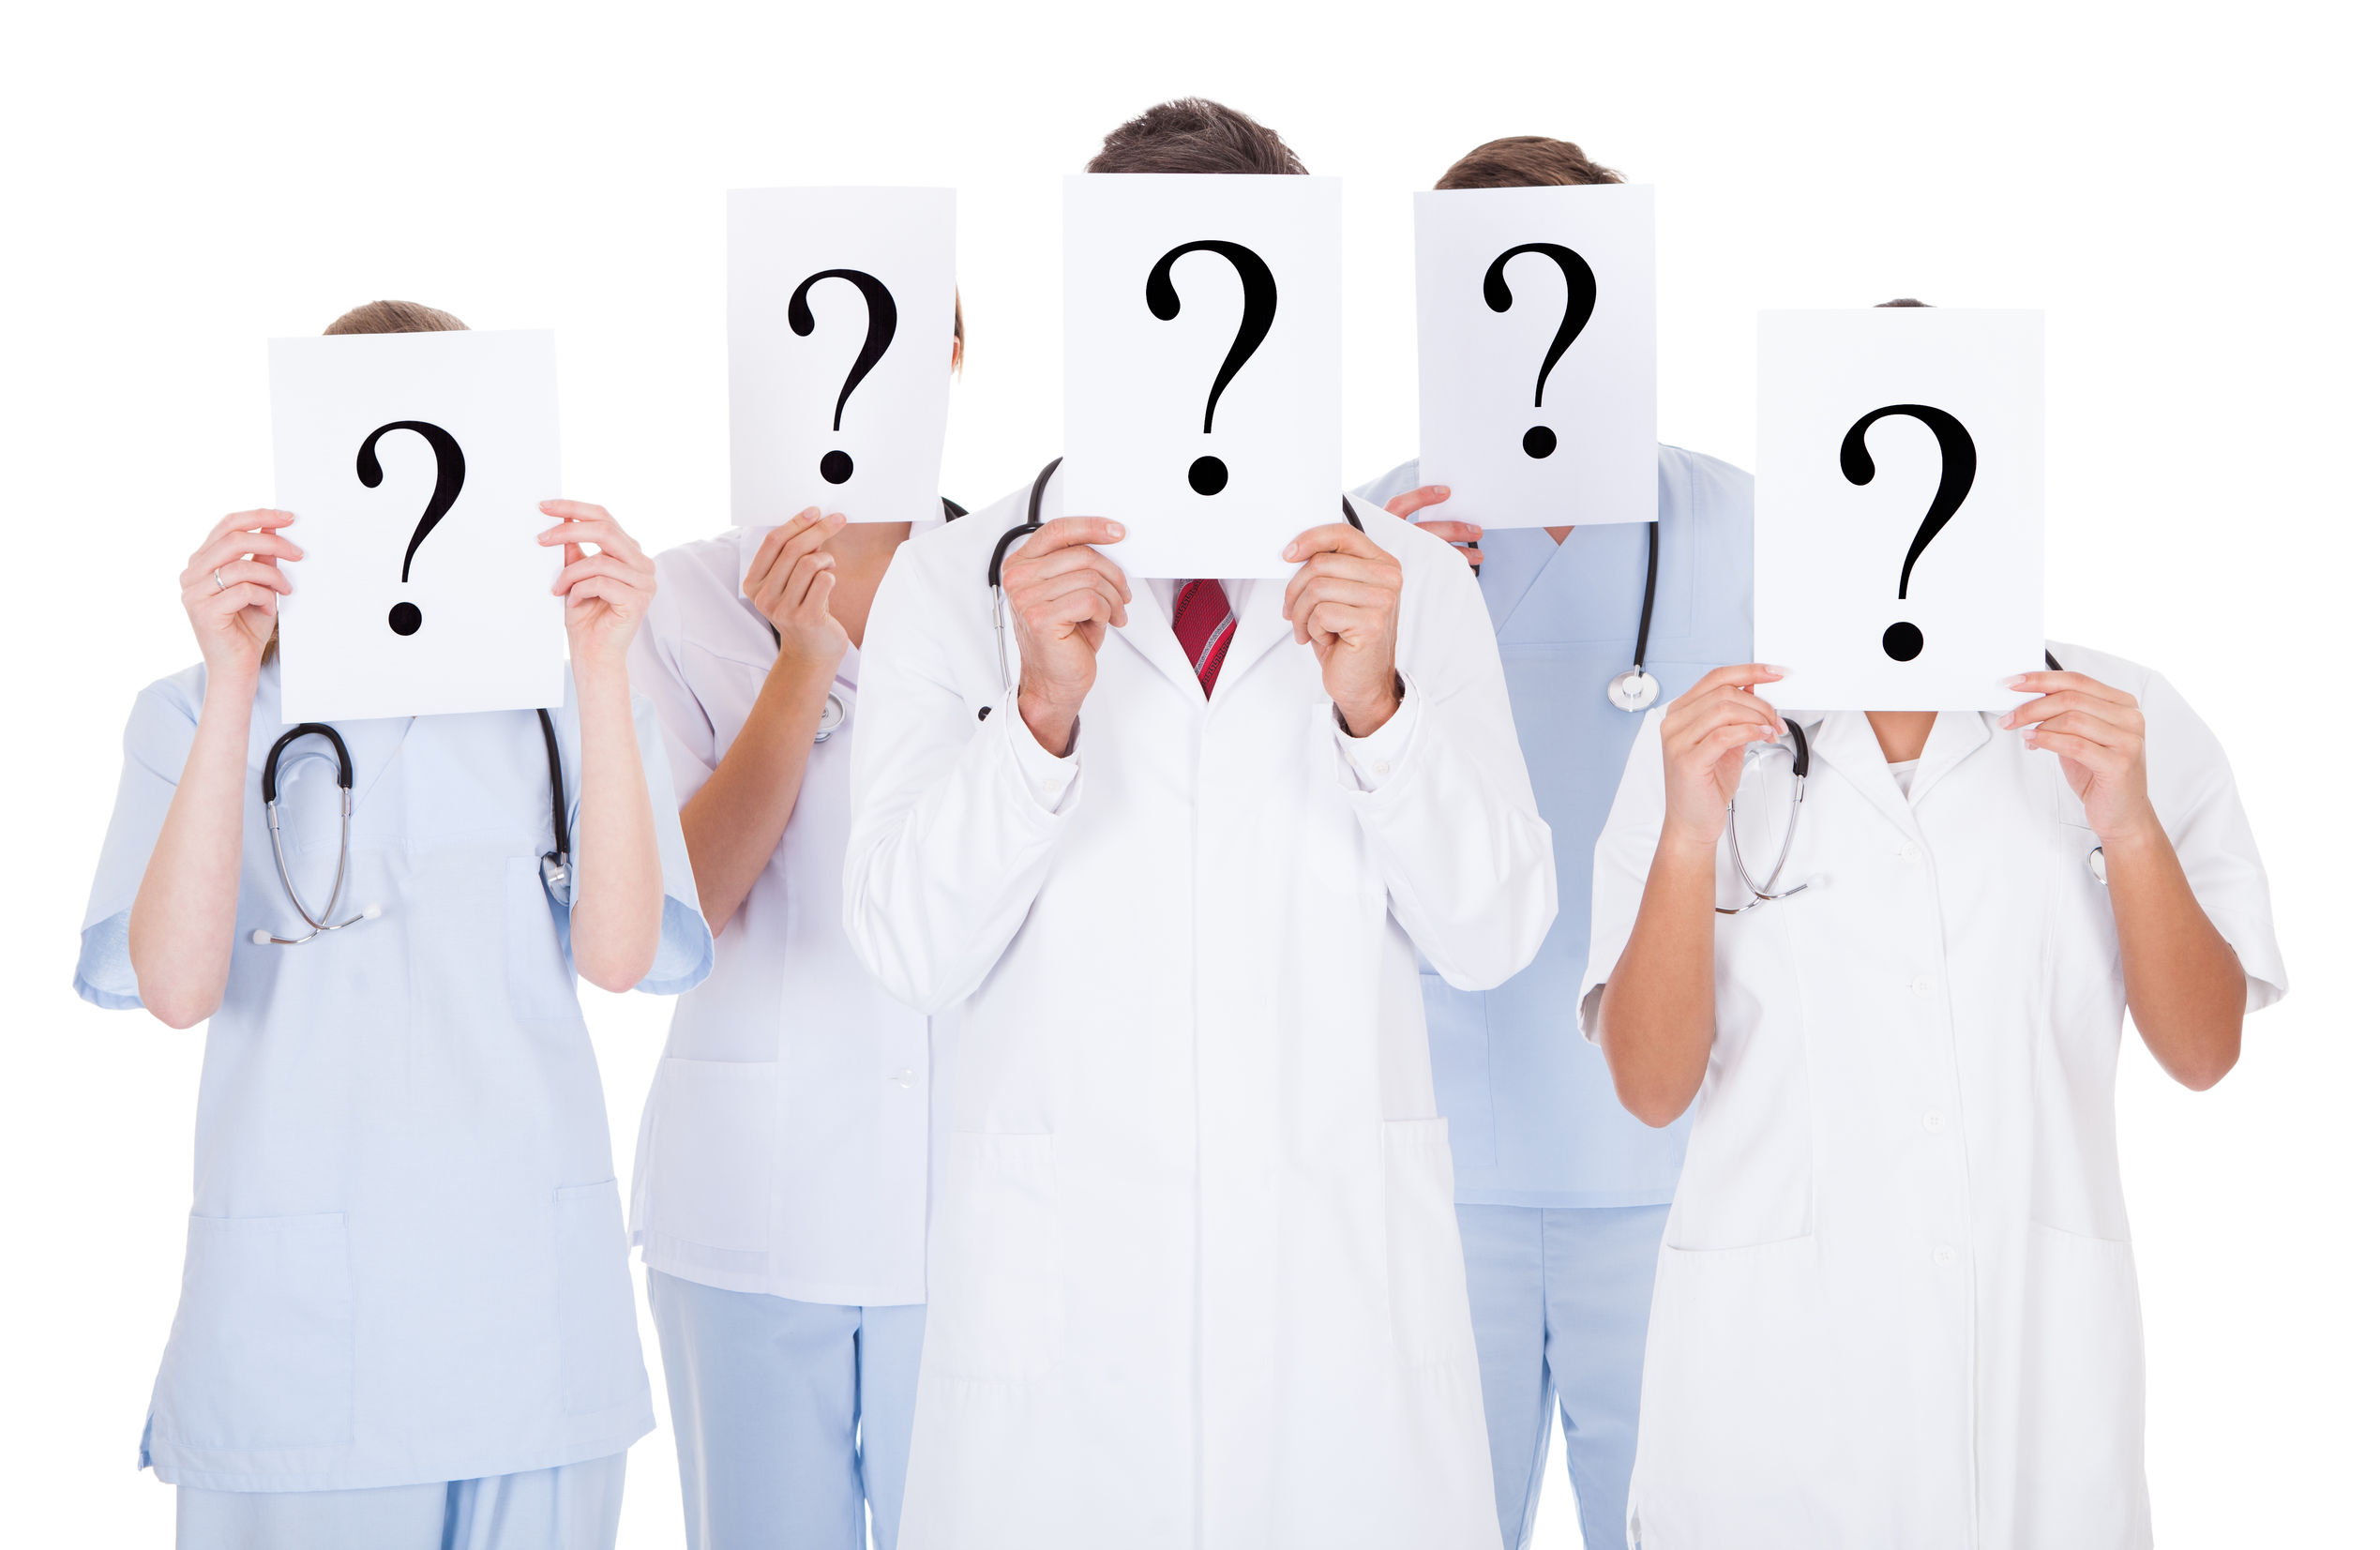 doctors-with-question-marks-for-faces